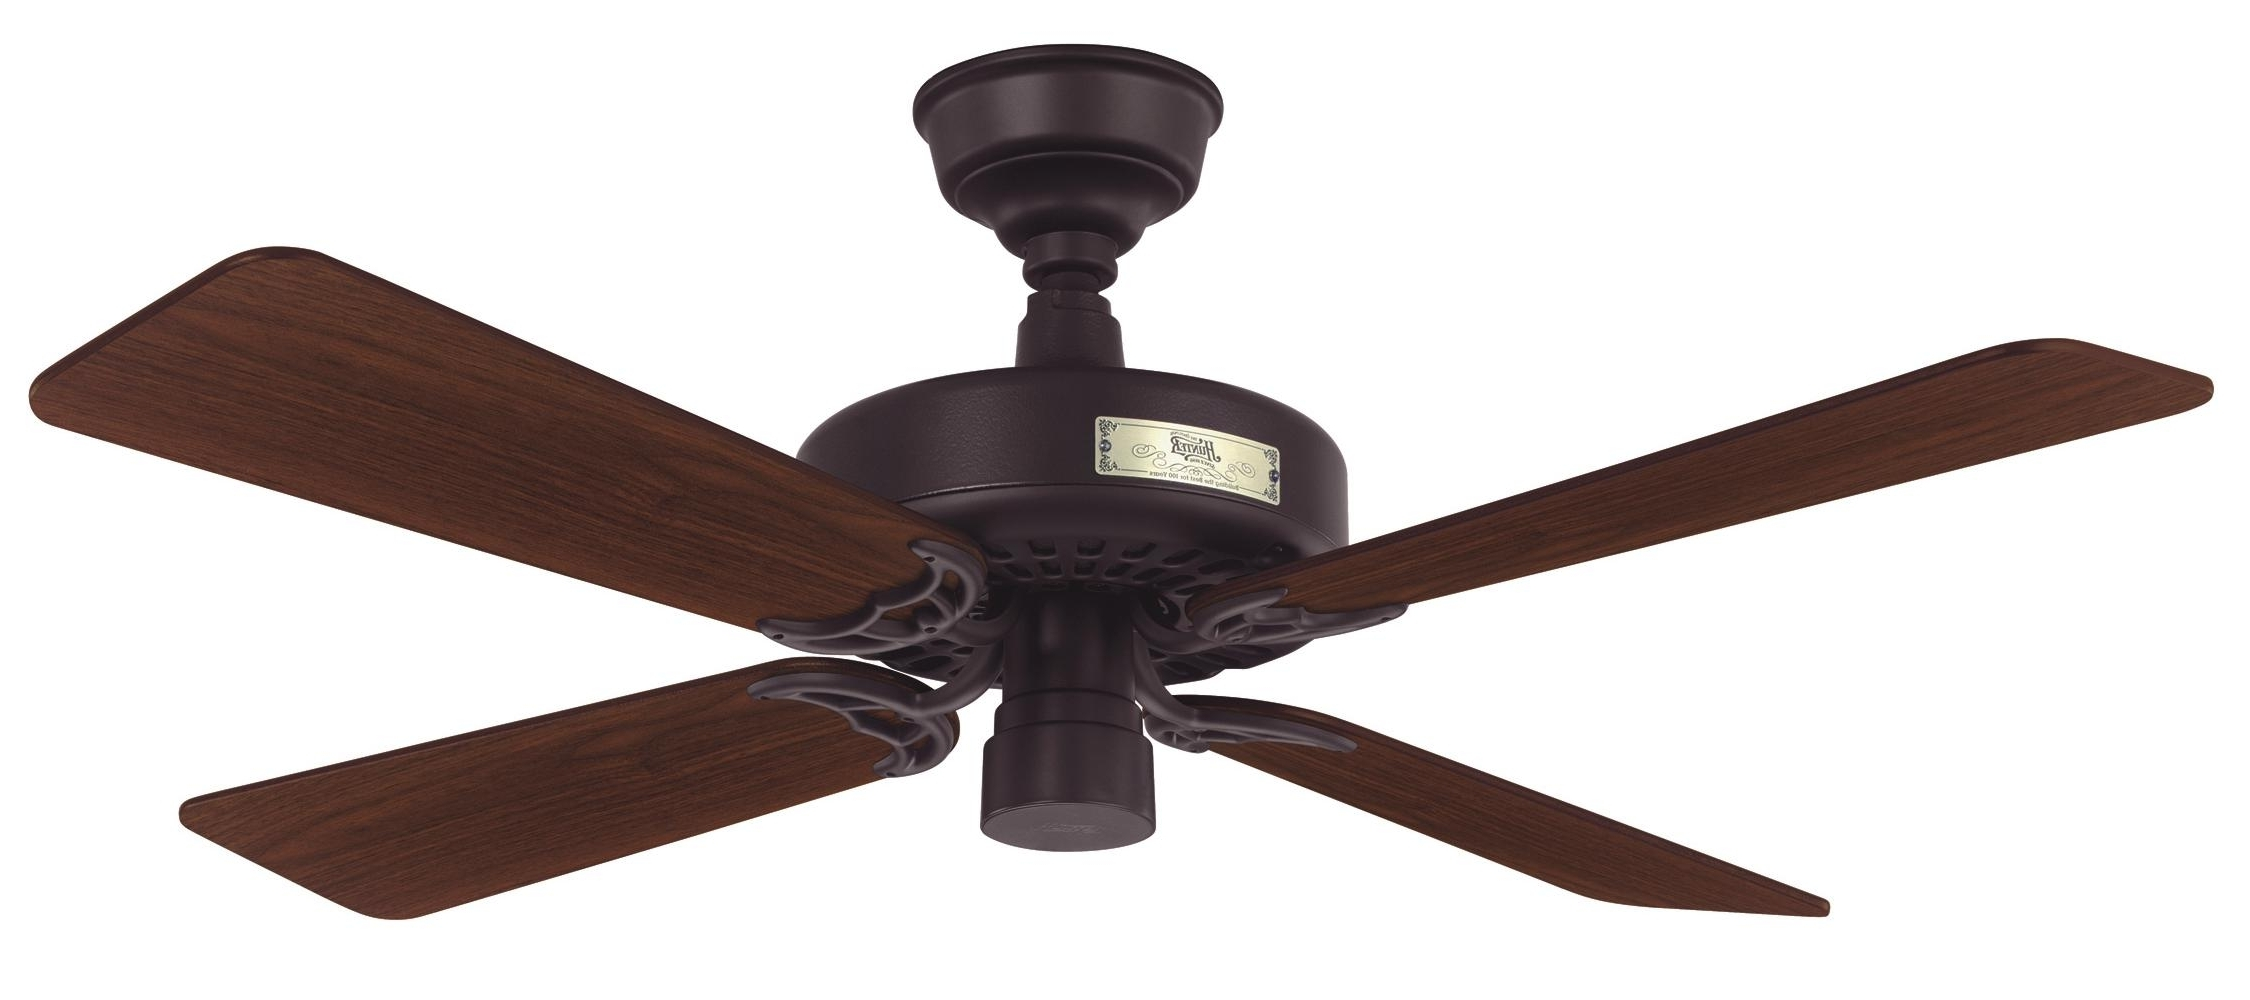 Harbor Breeze Ceiling Fan Light Not With Well Known Lowes Outdoor Ceiling Fans With Lights (View 10 of 20)